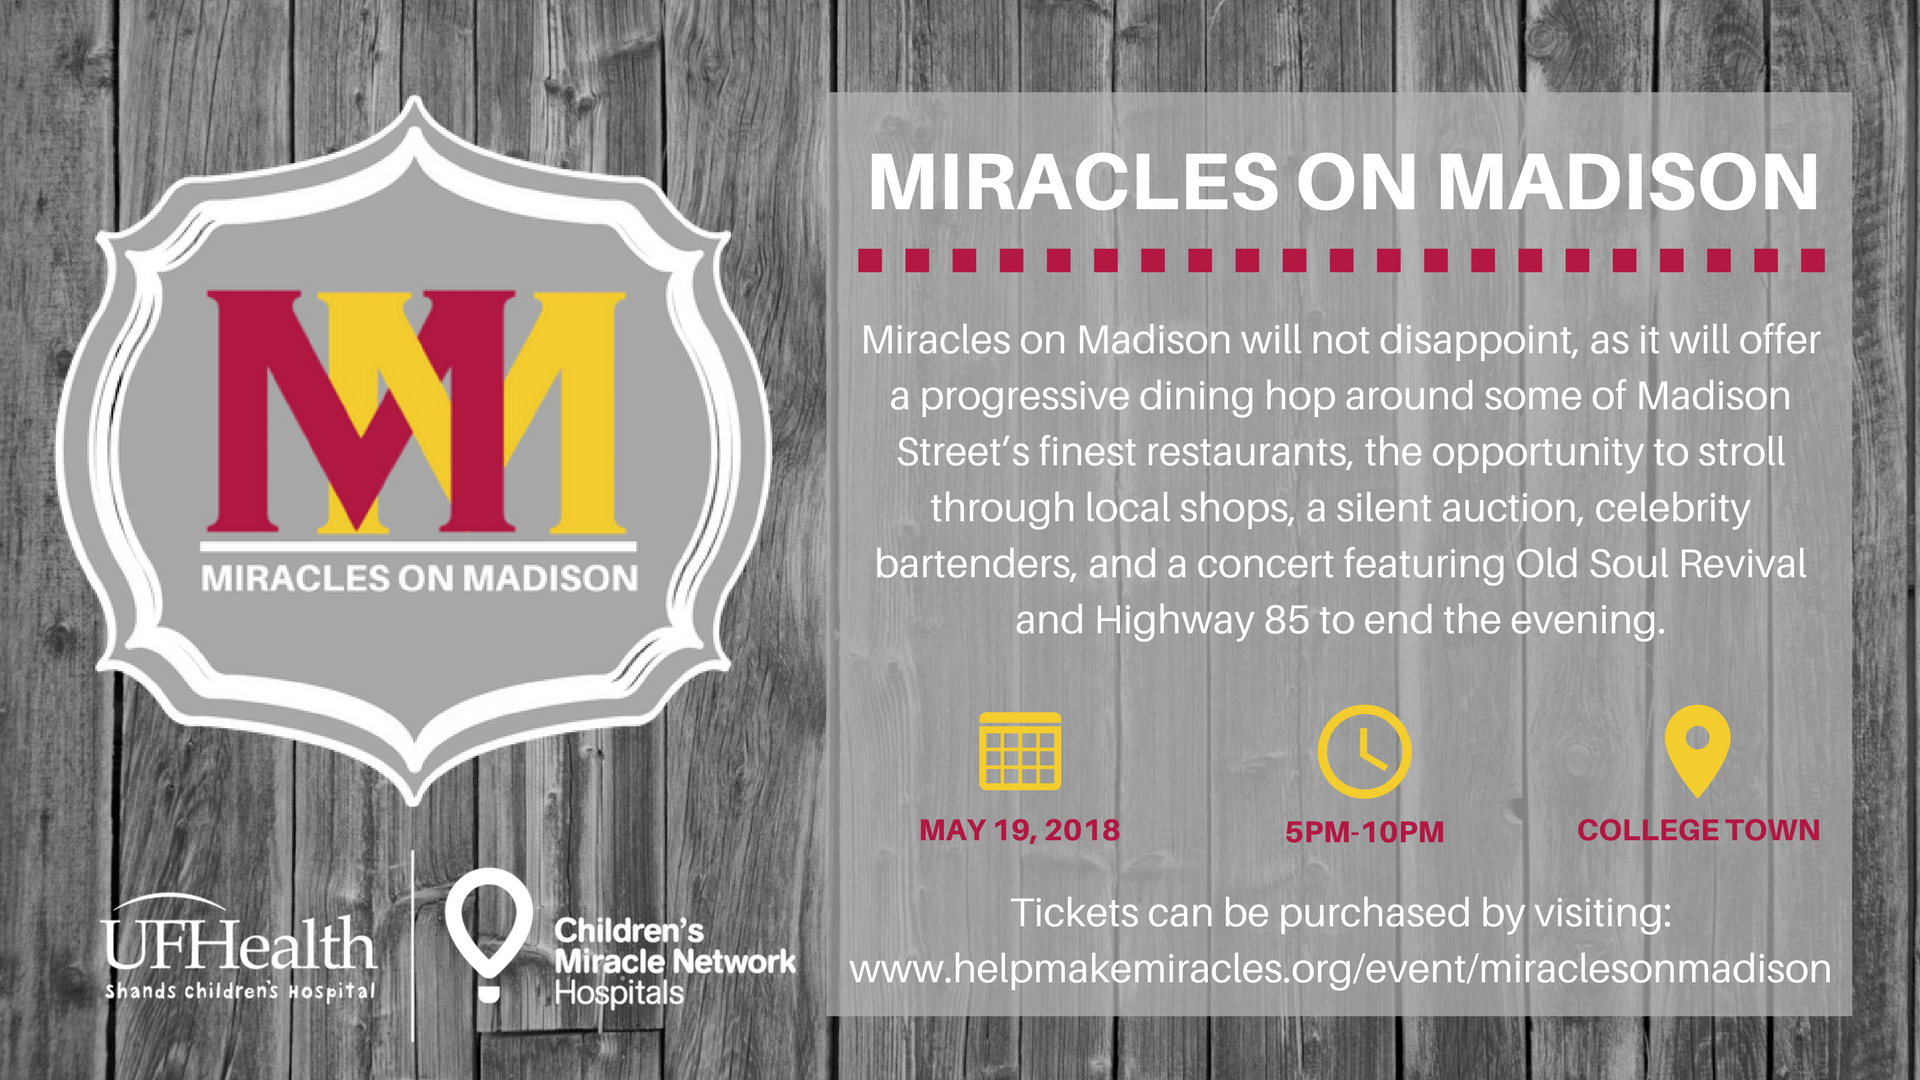 Miracles on Madison shopping and dining event